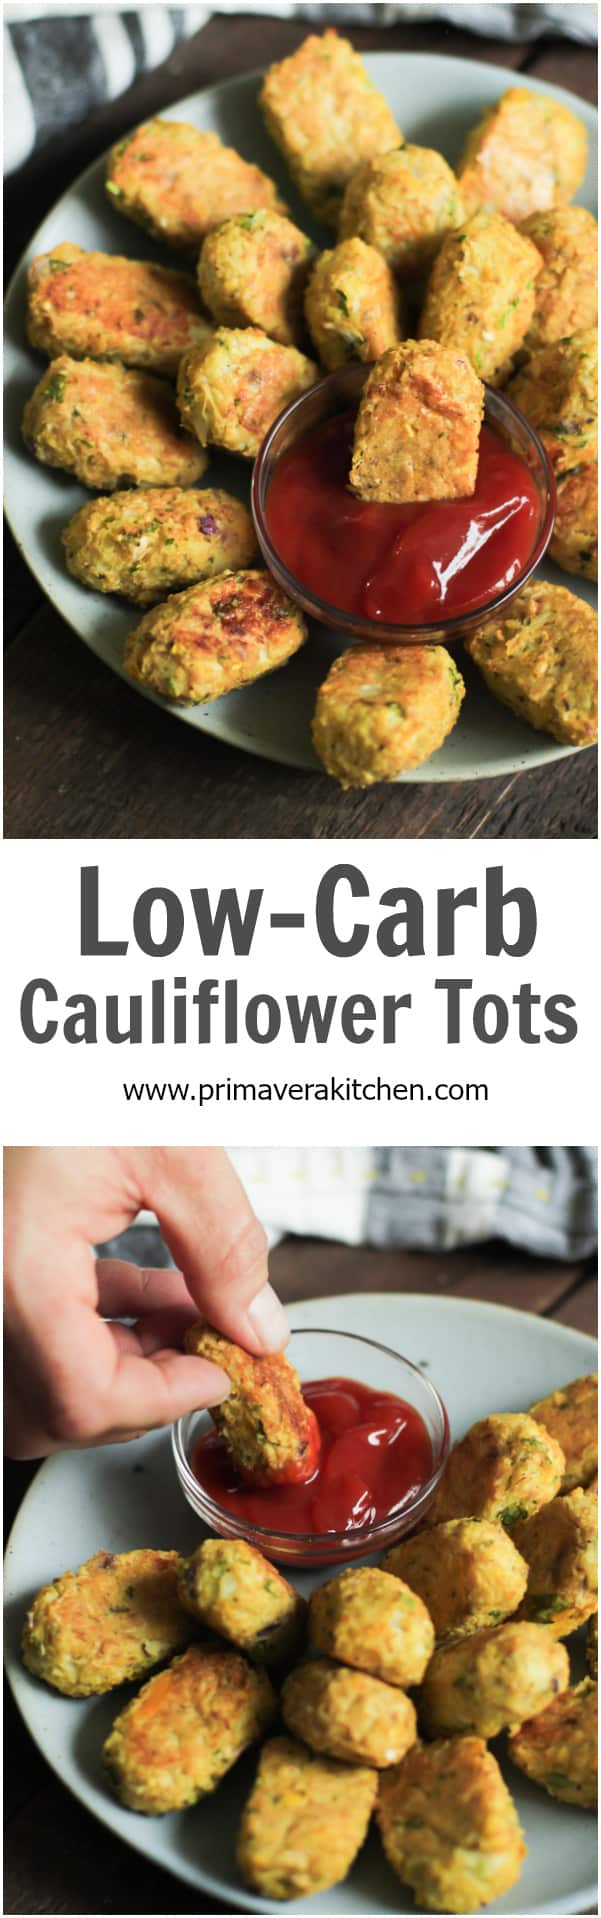 Low-carb cauliflower tots - These Low-carb Cauliflower Tots are the perfect baked afternoon snack because you can eat a dozen of them without feeling guilt.